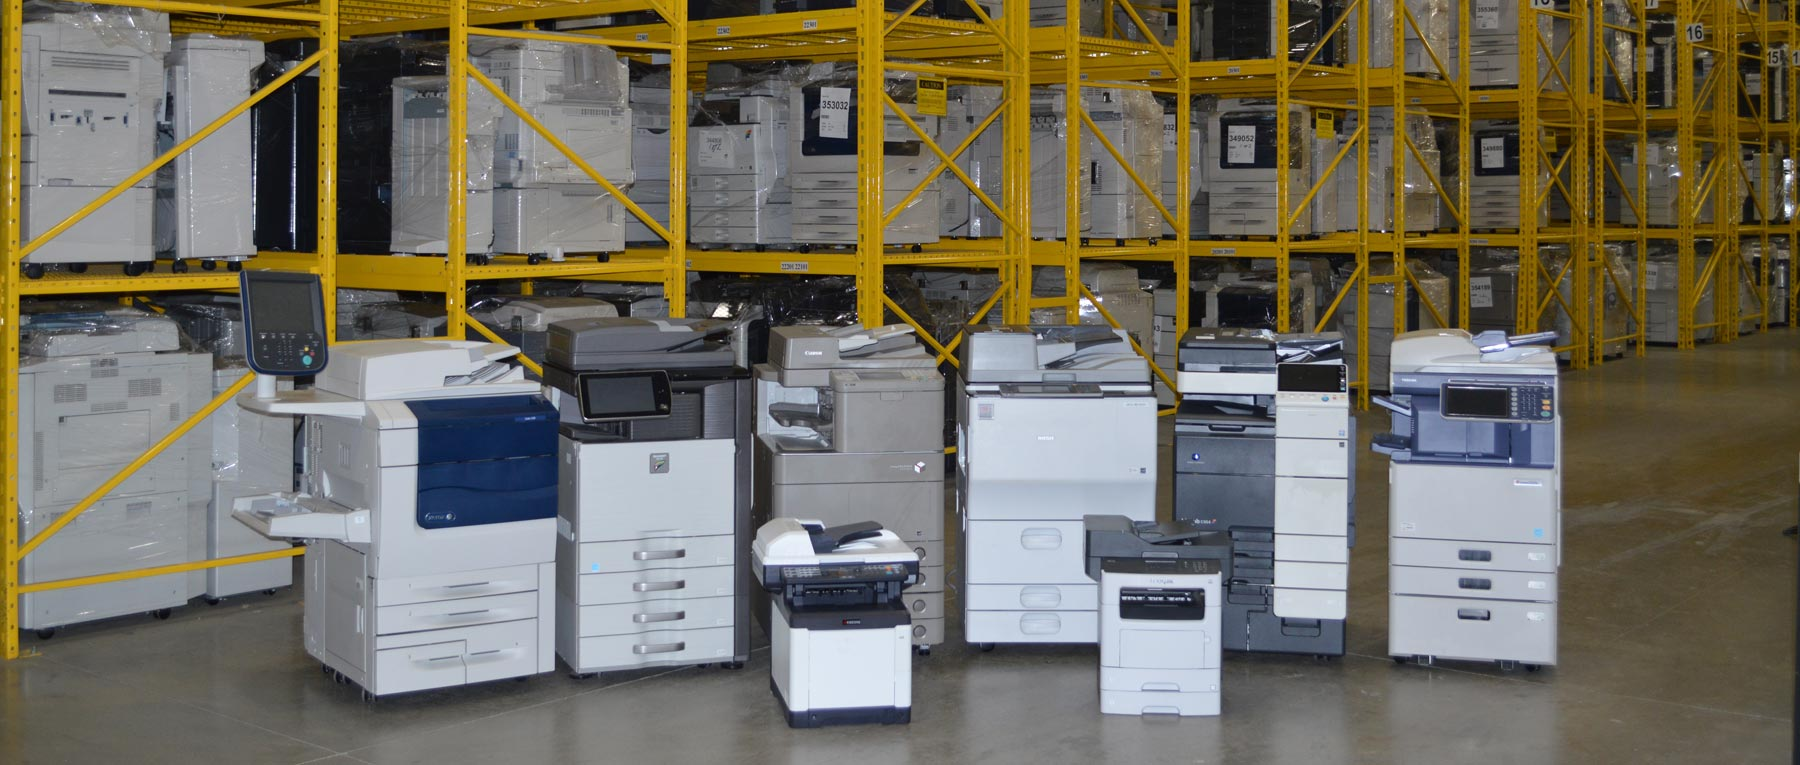 6 large and 2 small copiers ranged in front of warehouse shelves of copiers